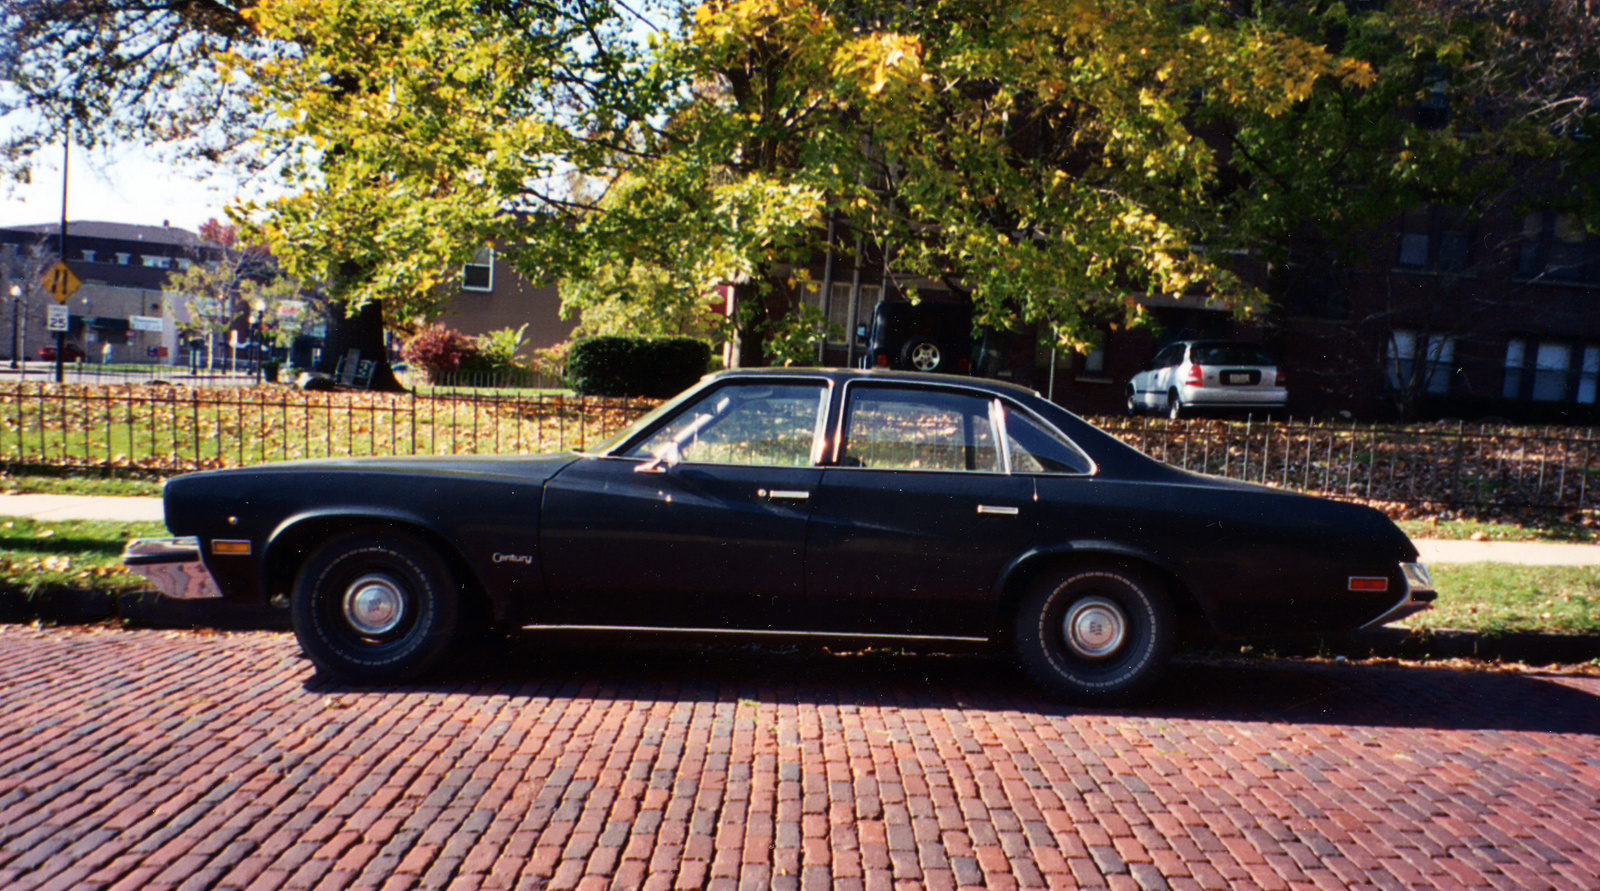 buick century images #5